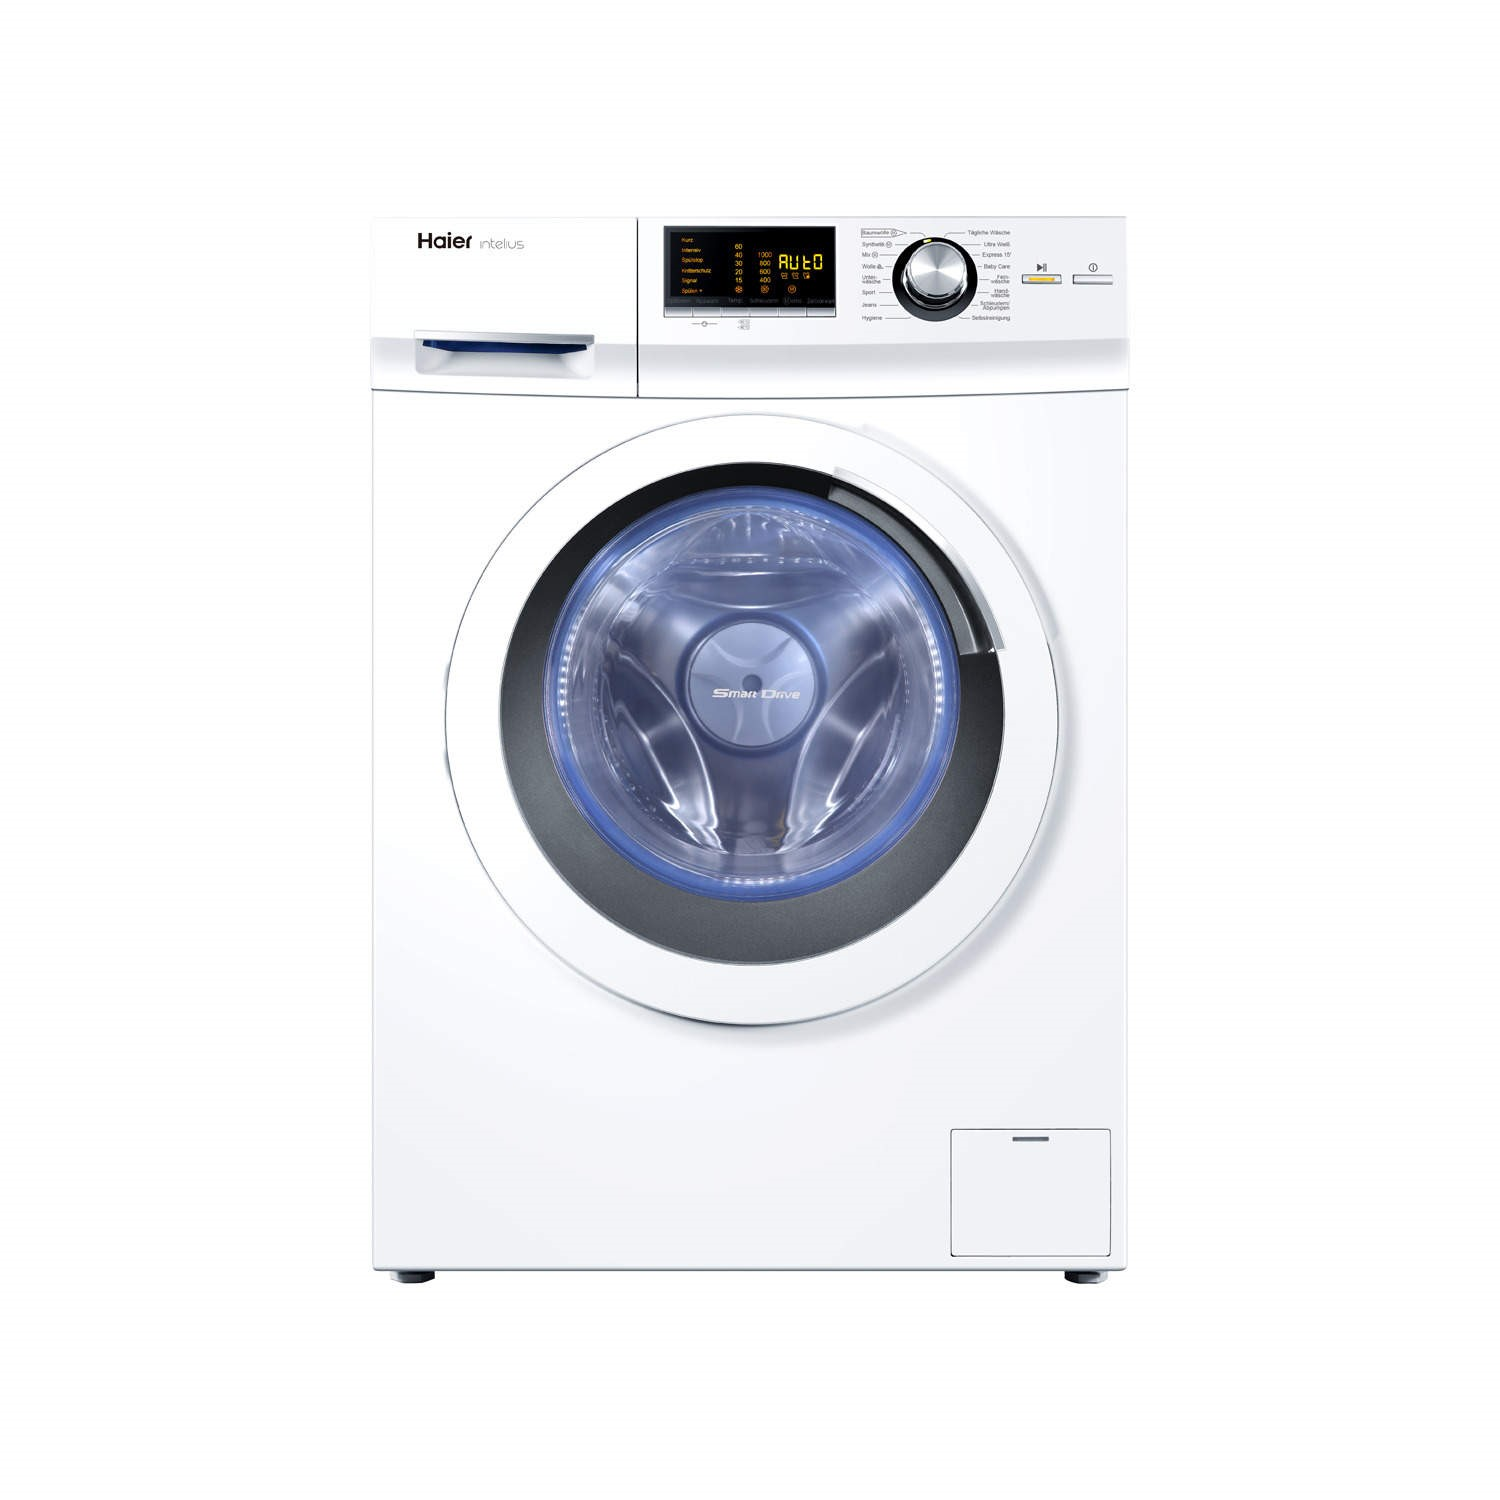 smartdrive washing machine